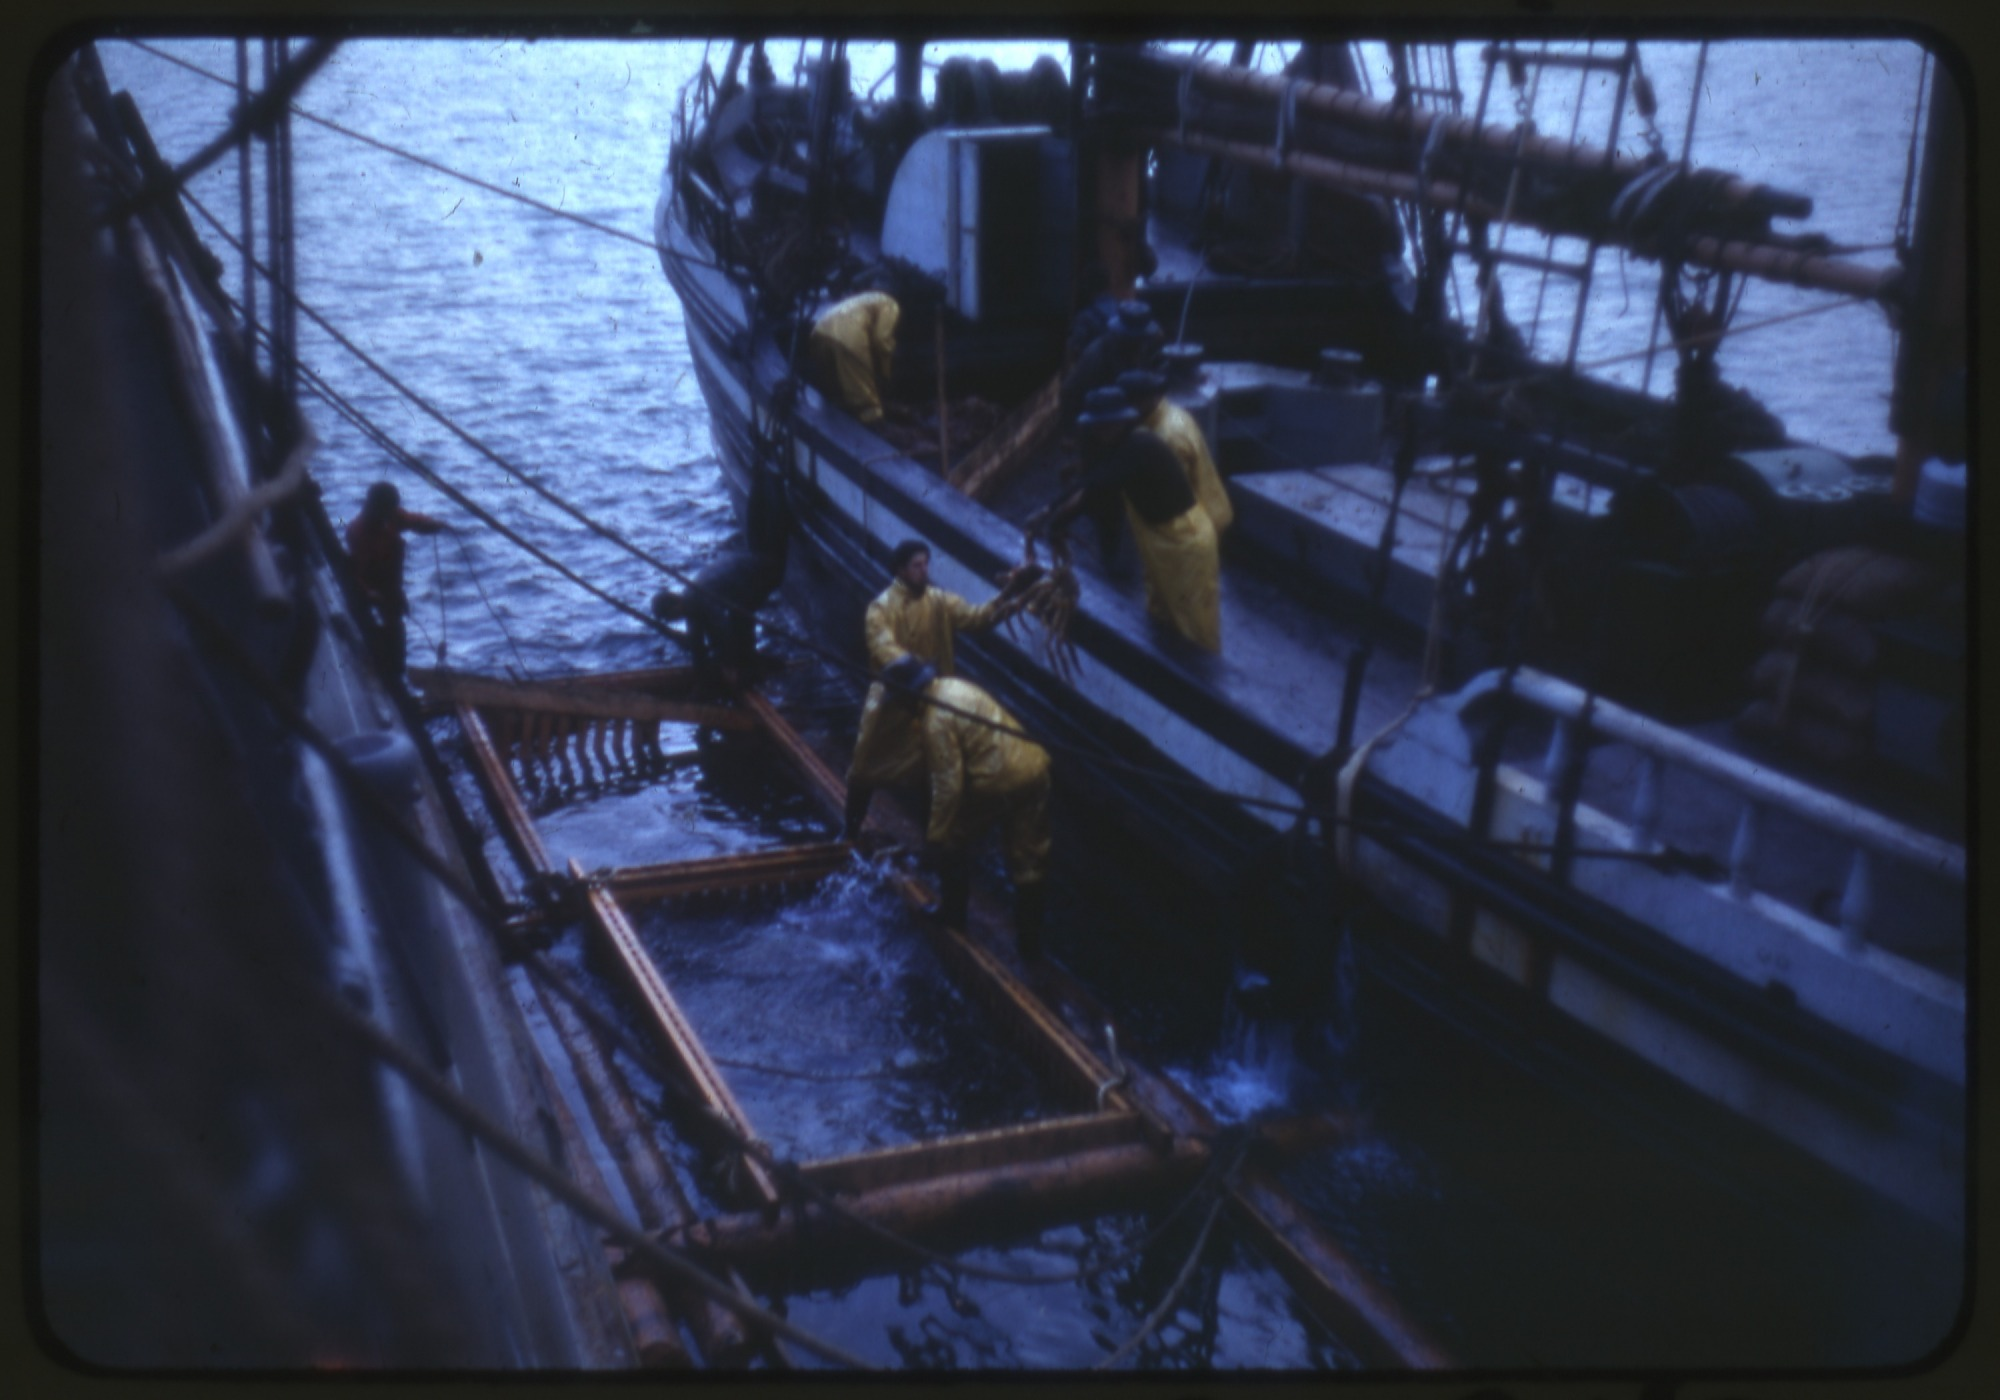 Canoe Bay Crab Cages, Smithsonian Institution Archives, SIA RU007231 [SIA2013-06635].